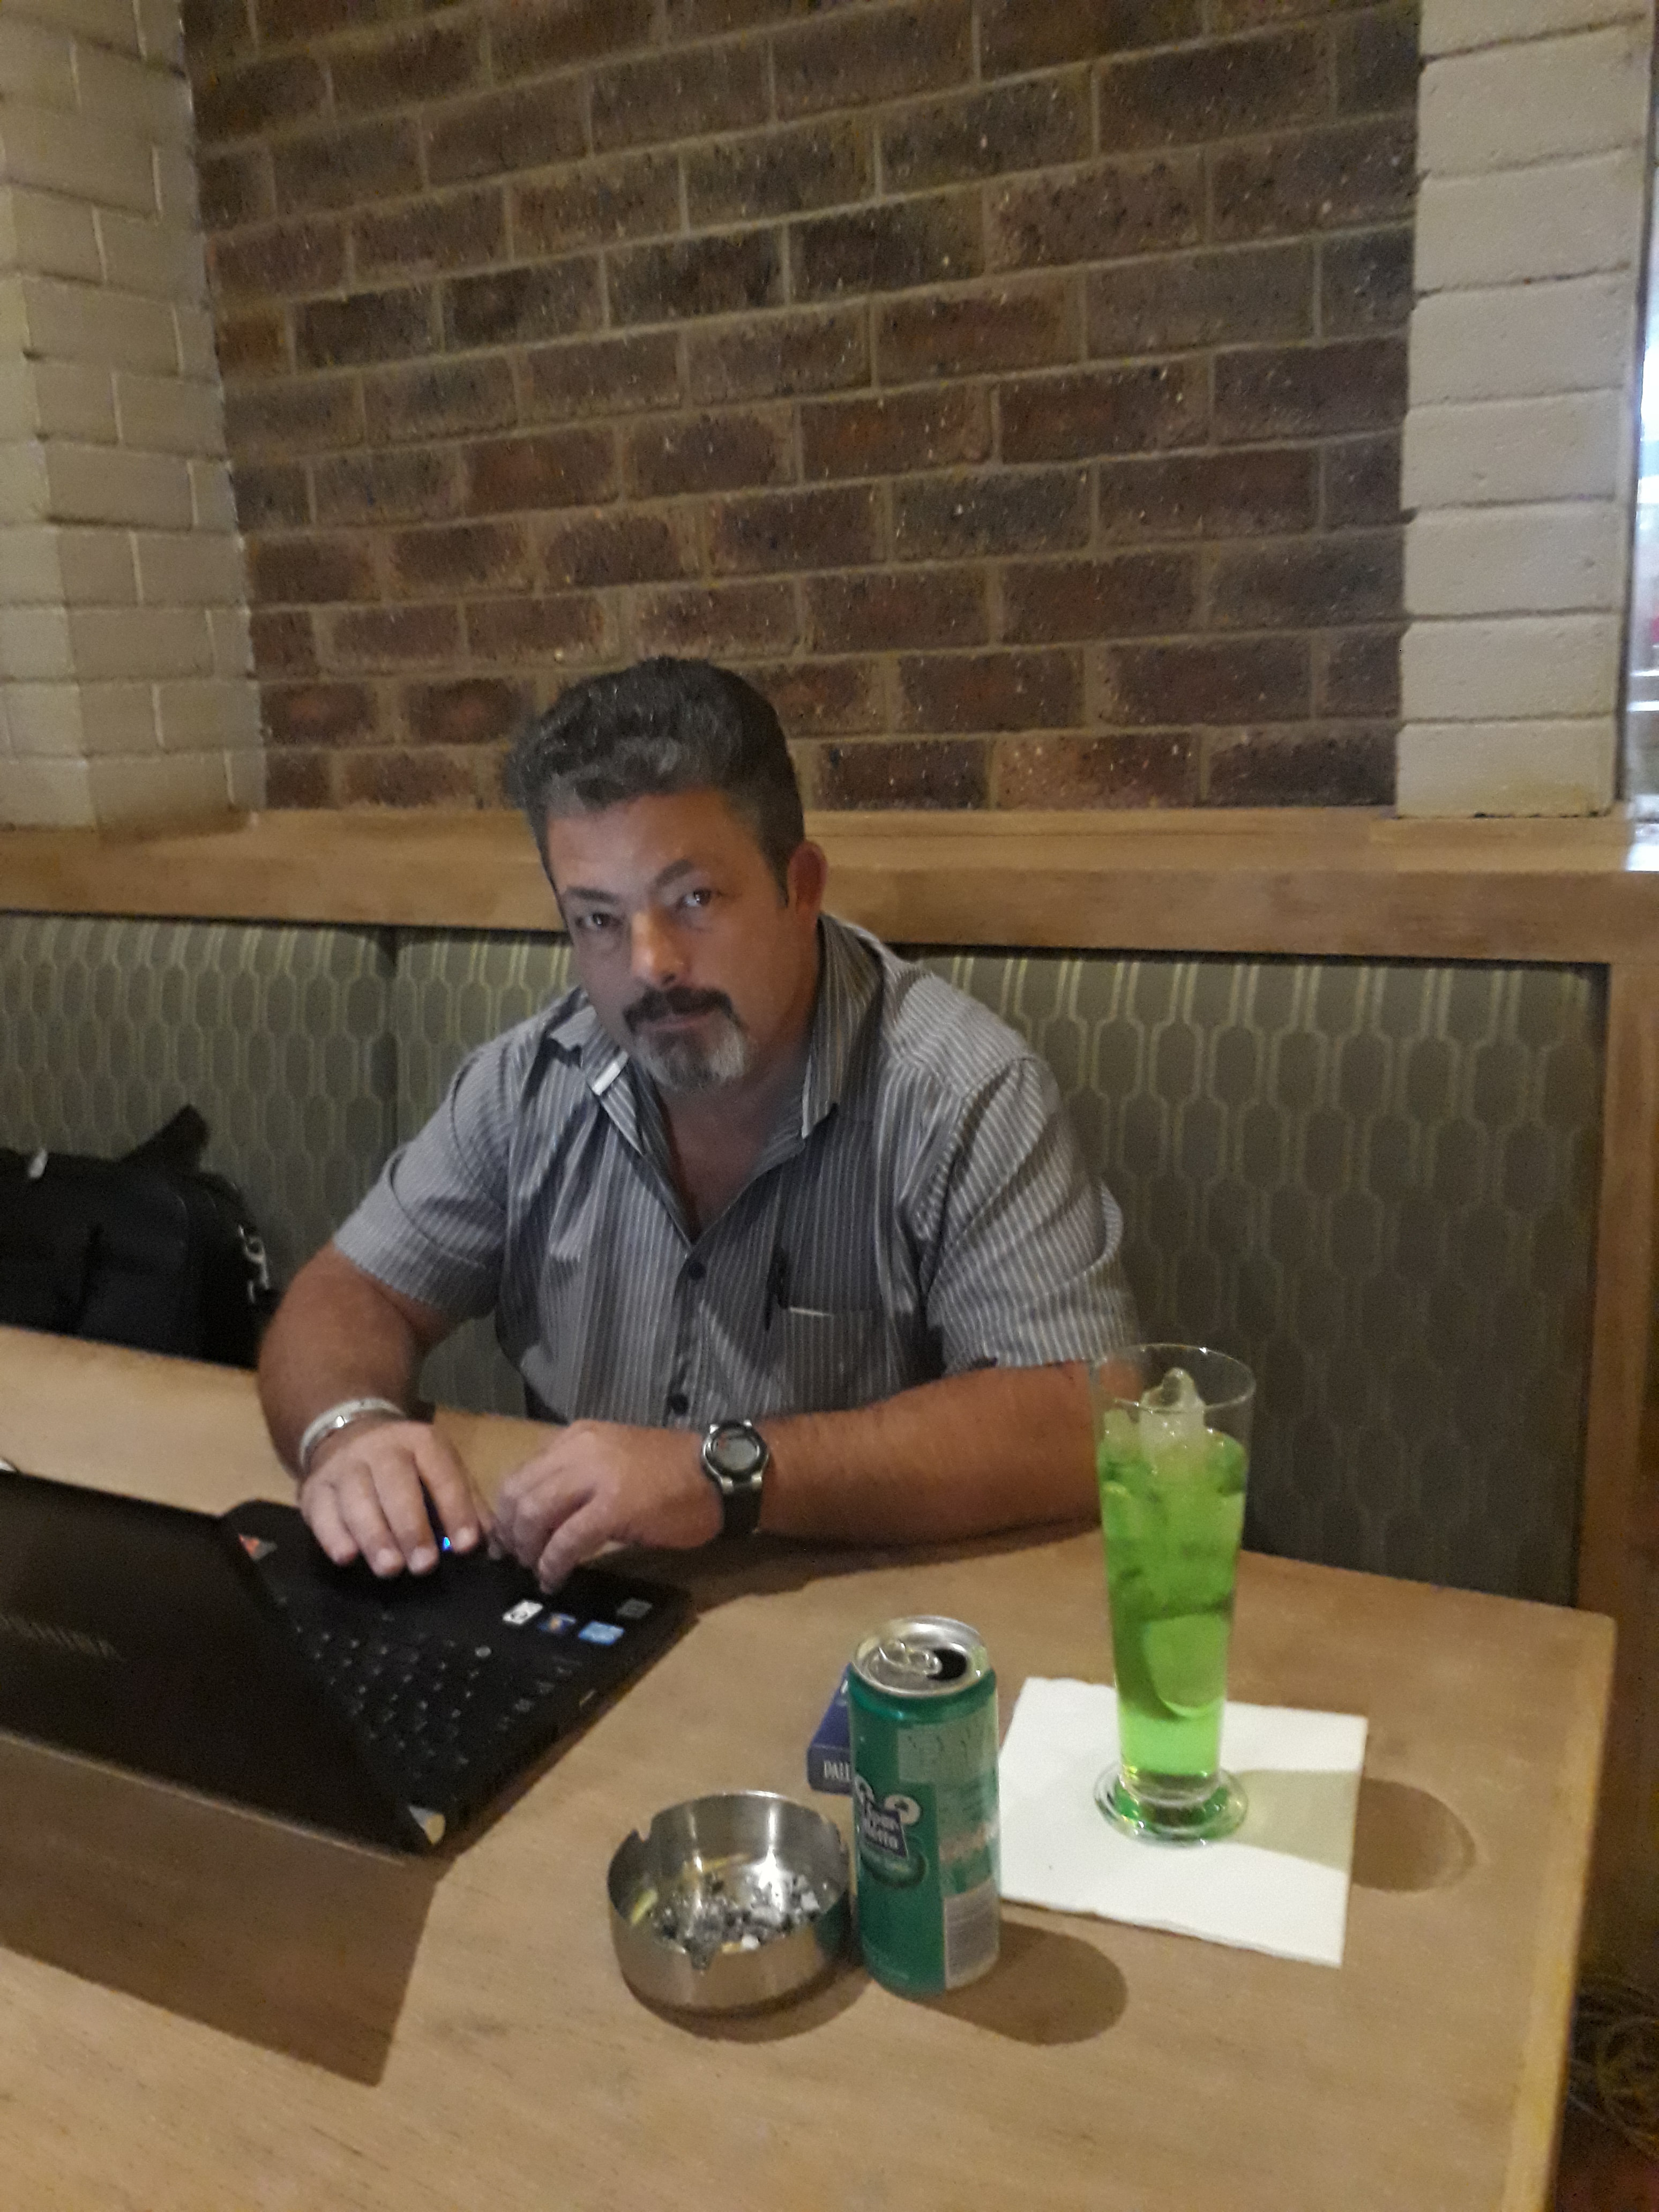 Working at a coffee shop in sunny South Africa